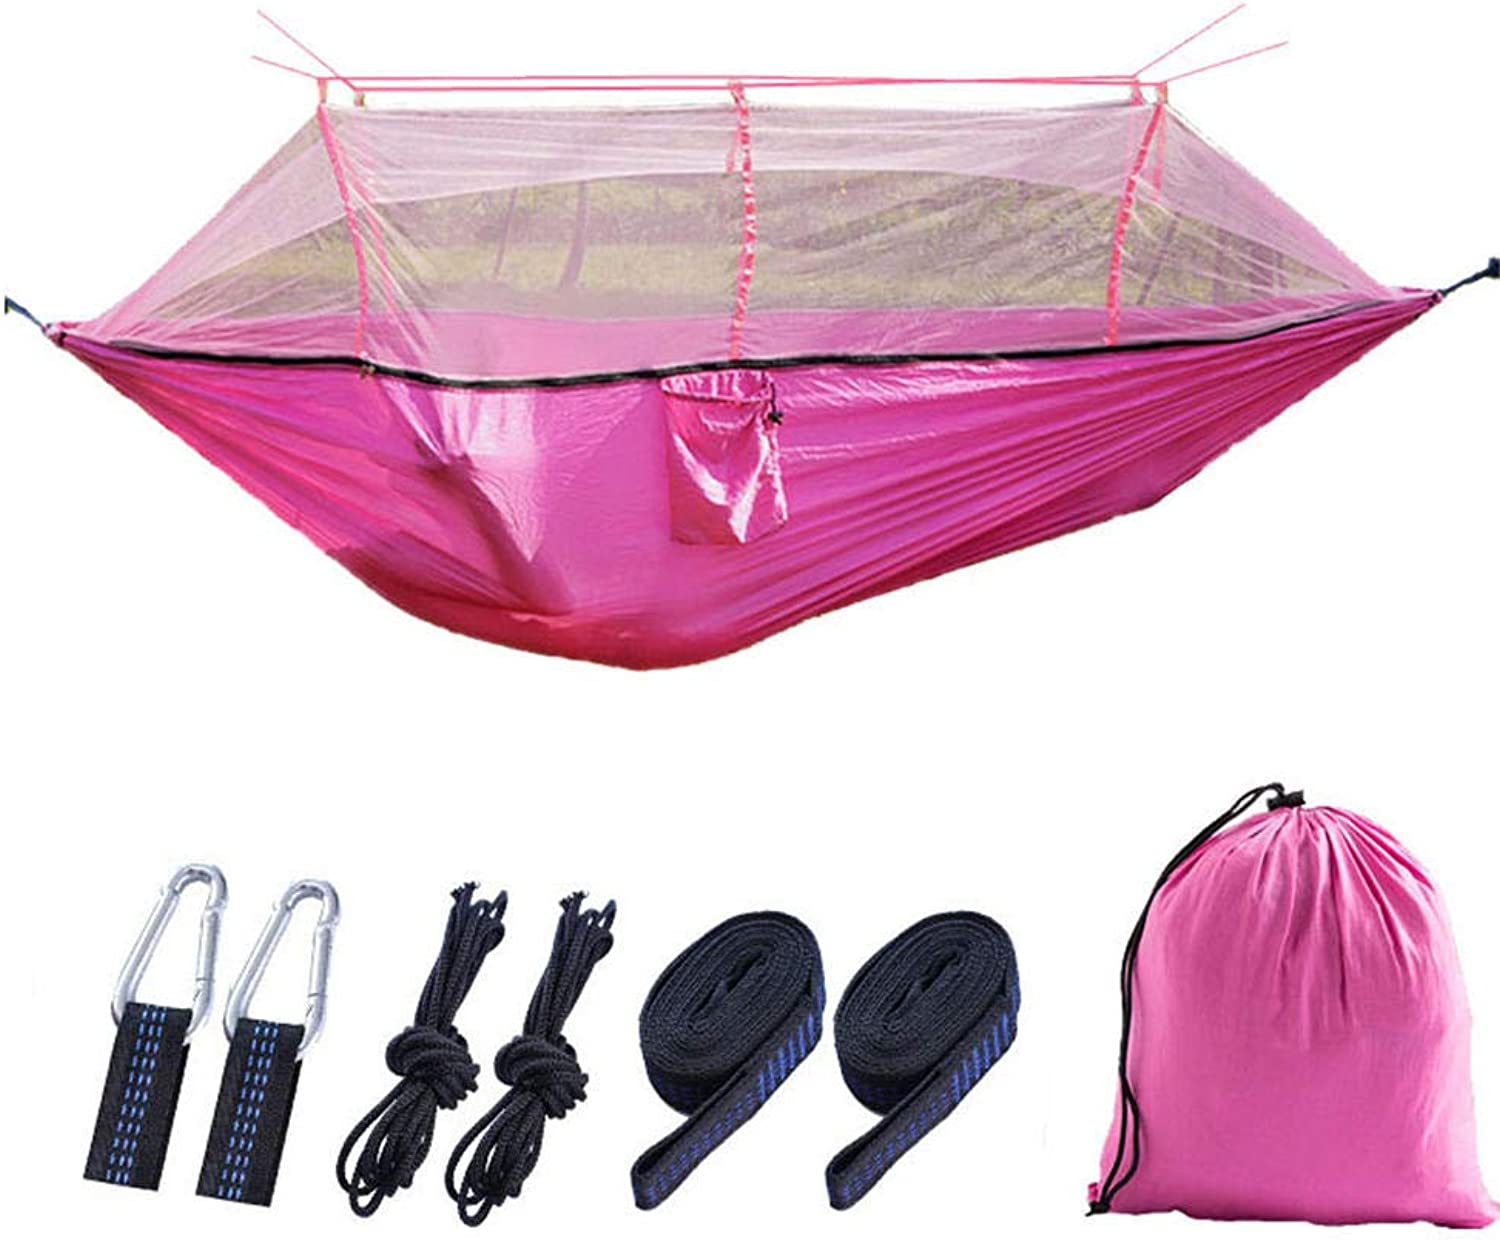 Hammock Outdoor with Mosquito net Garden Camping Double Double Parachute Cloth Portable Hiking Cross-Country Mountaineering Multifunctional